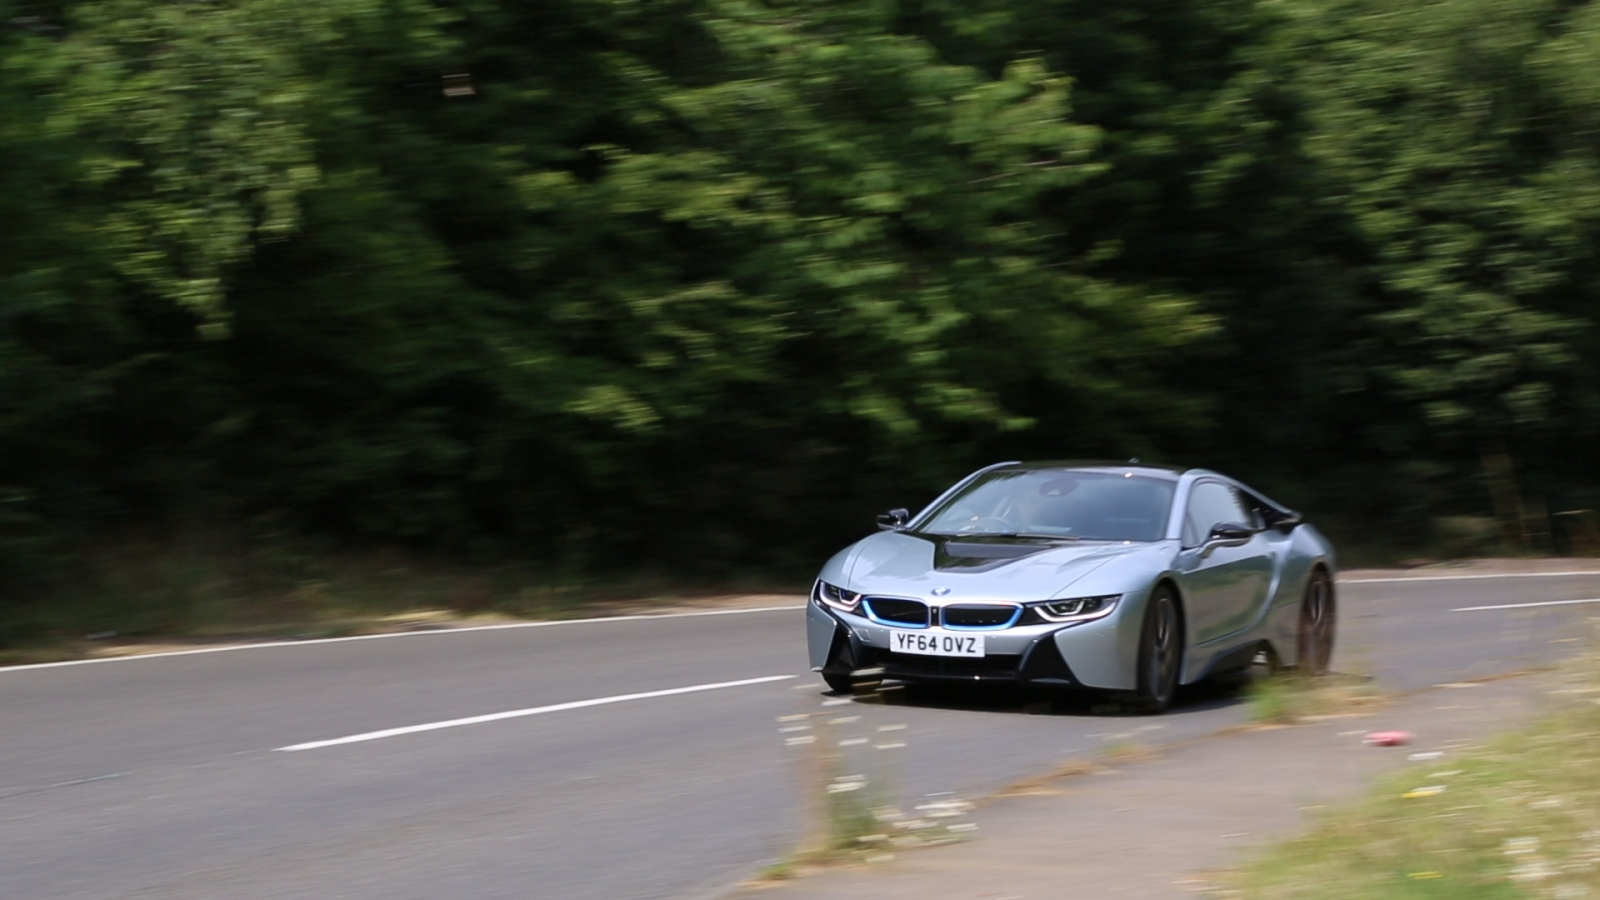 BMW i8 in action